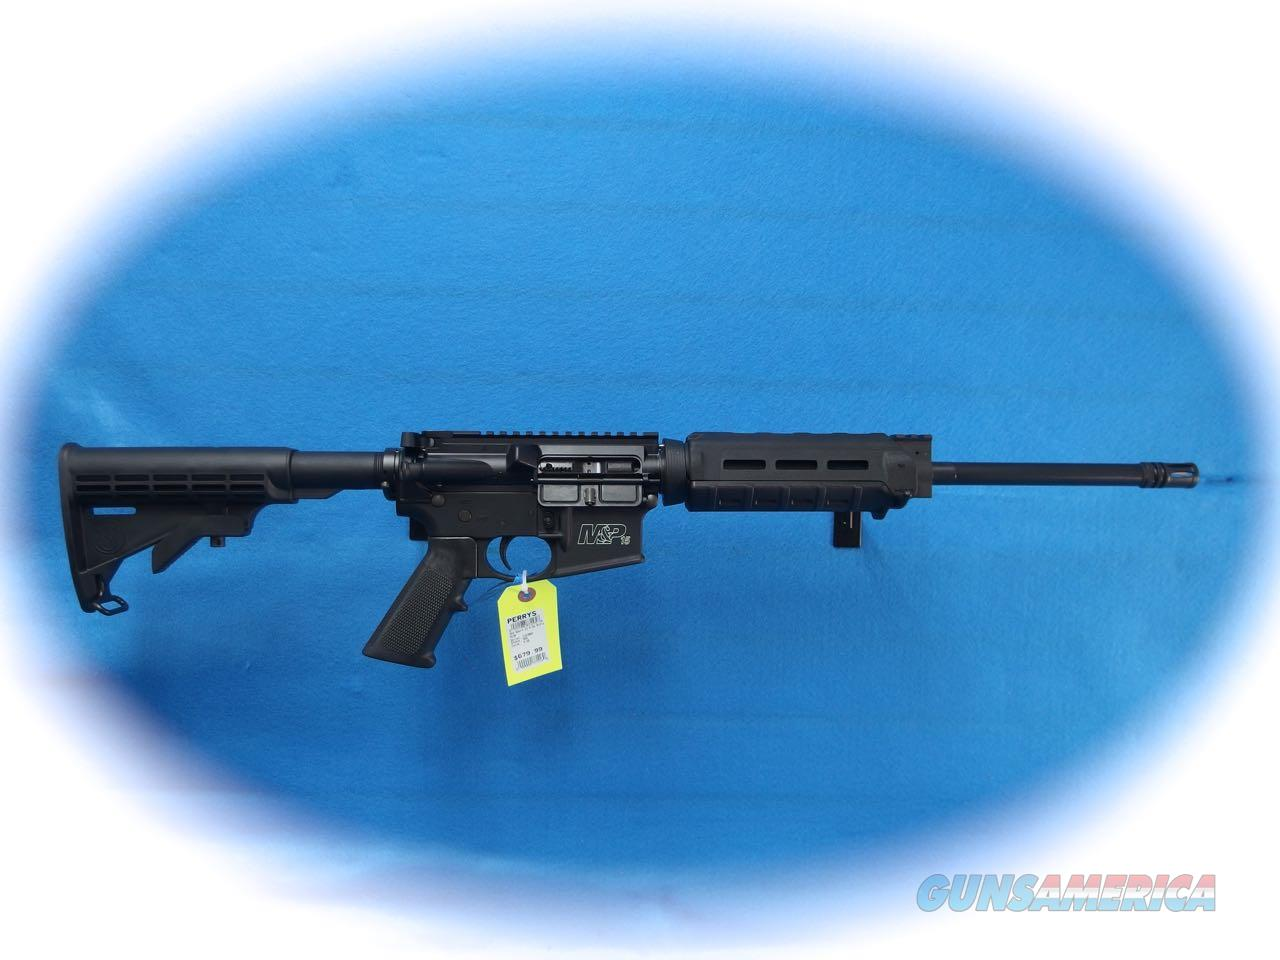 M&P15 SPORT II OPTICS READY WITH M-LOK HANDGUARD 5.56mm Cal **New**  Guns > Rifles > Smith & Wesson Rifles > M&P